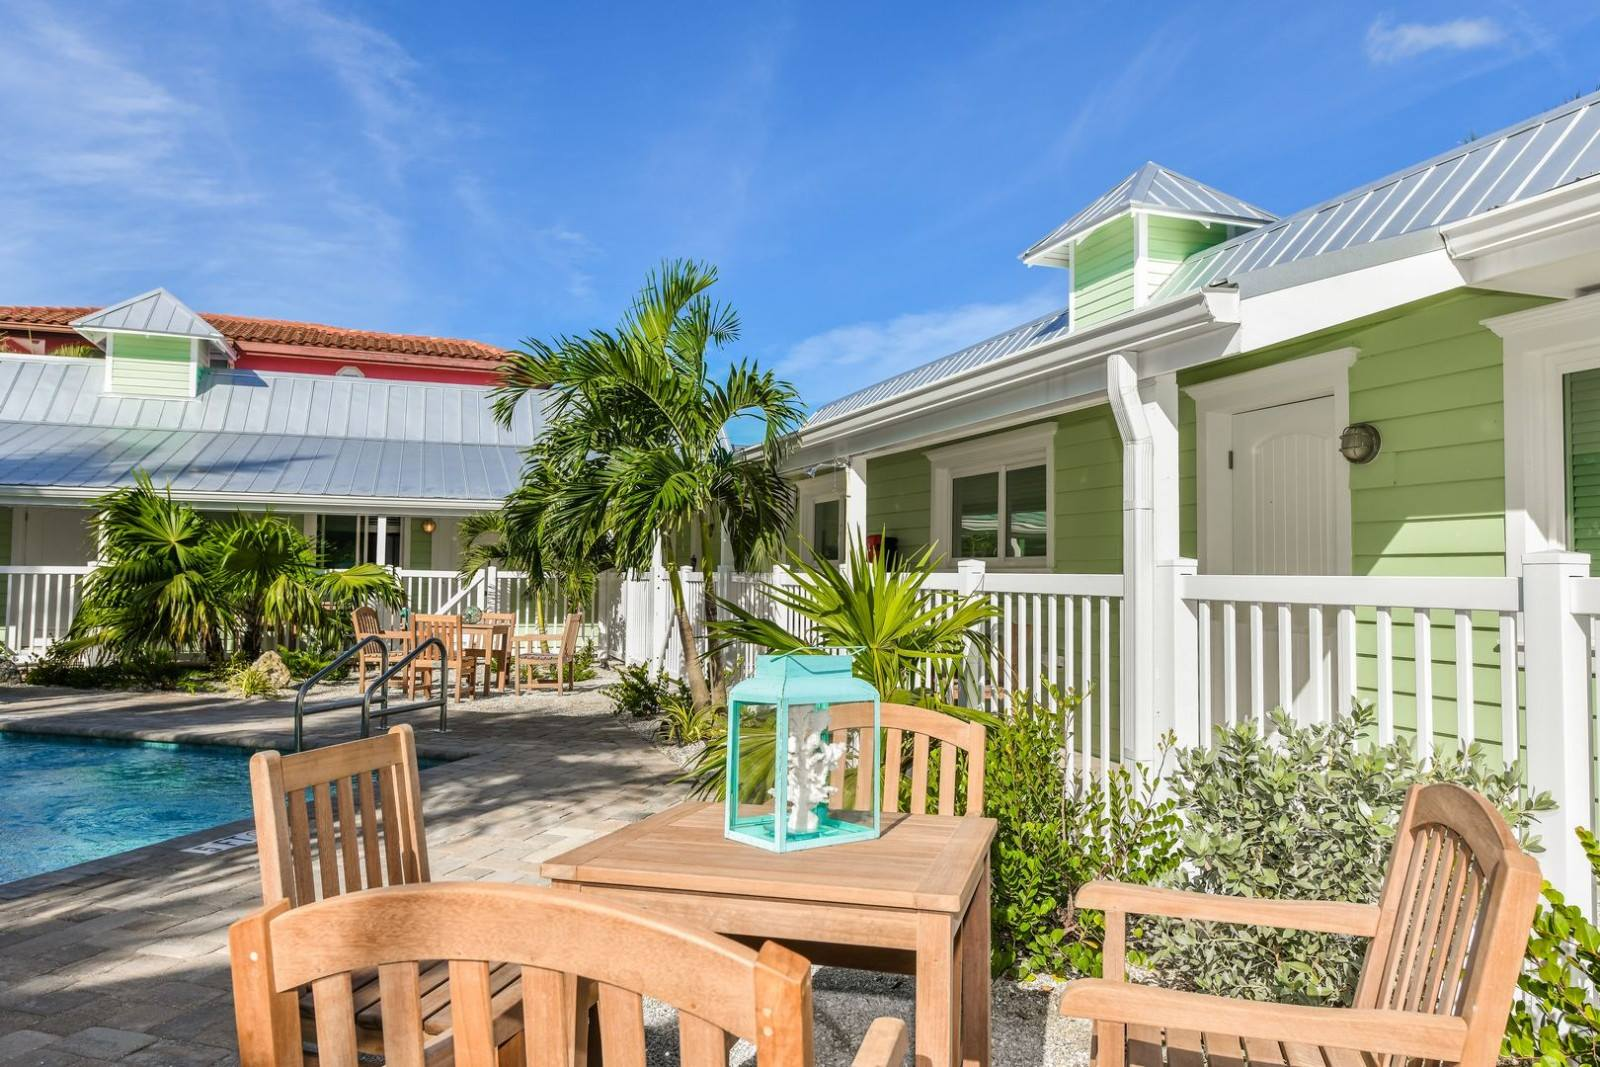 tropical-breeze-resort-pet-friendly-boutique-hotel-bungalows-siesta-key